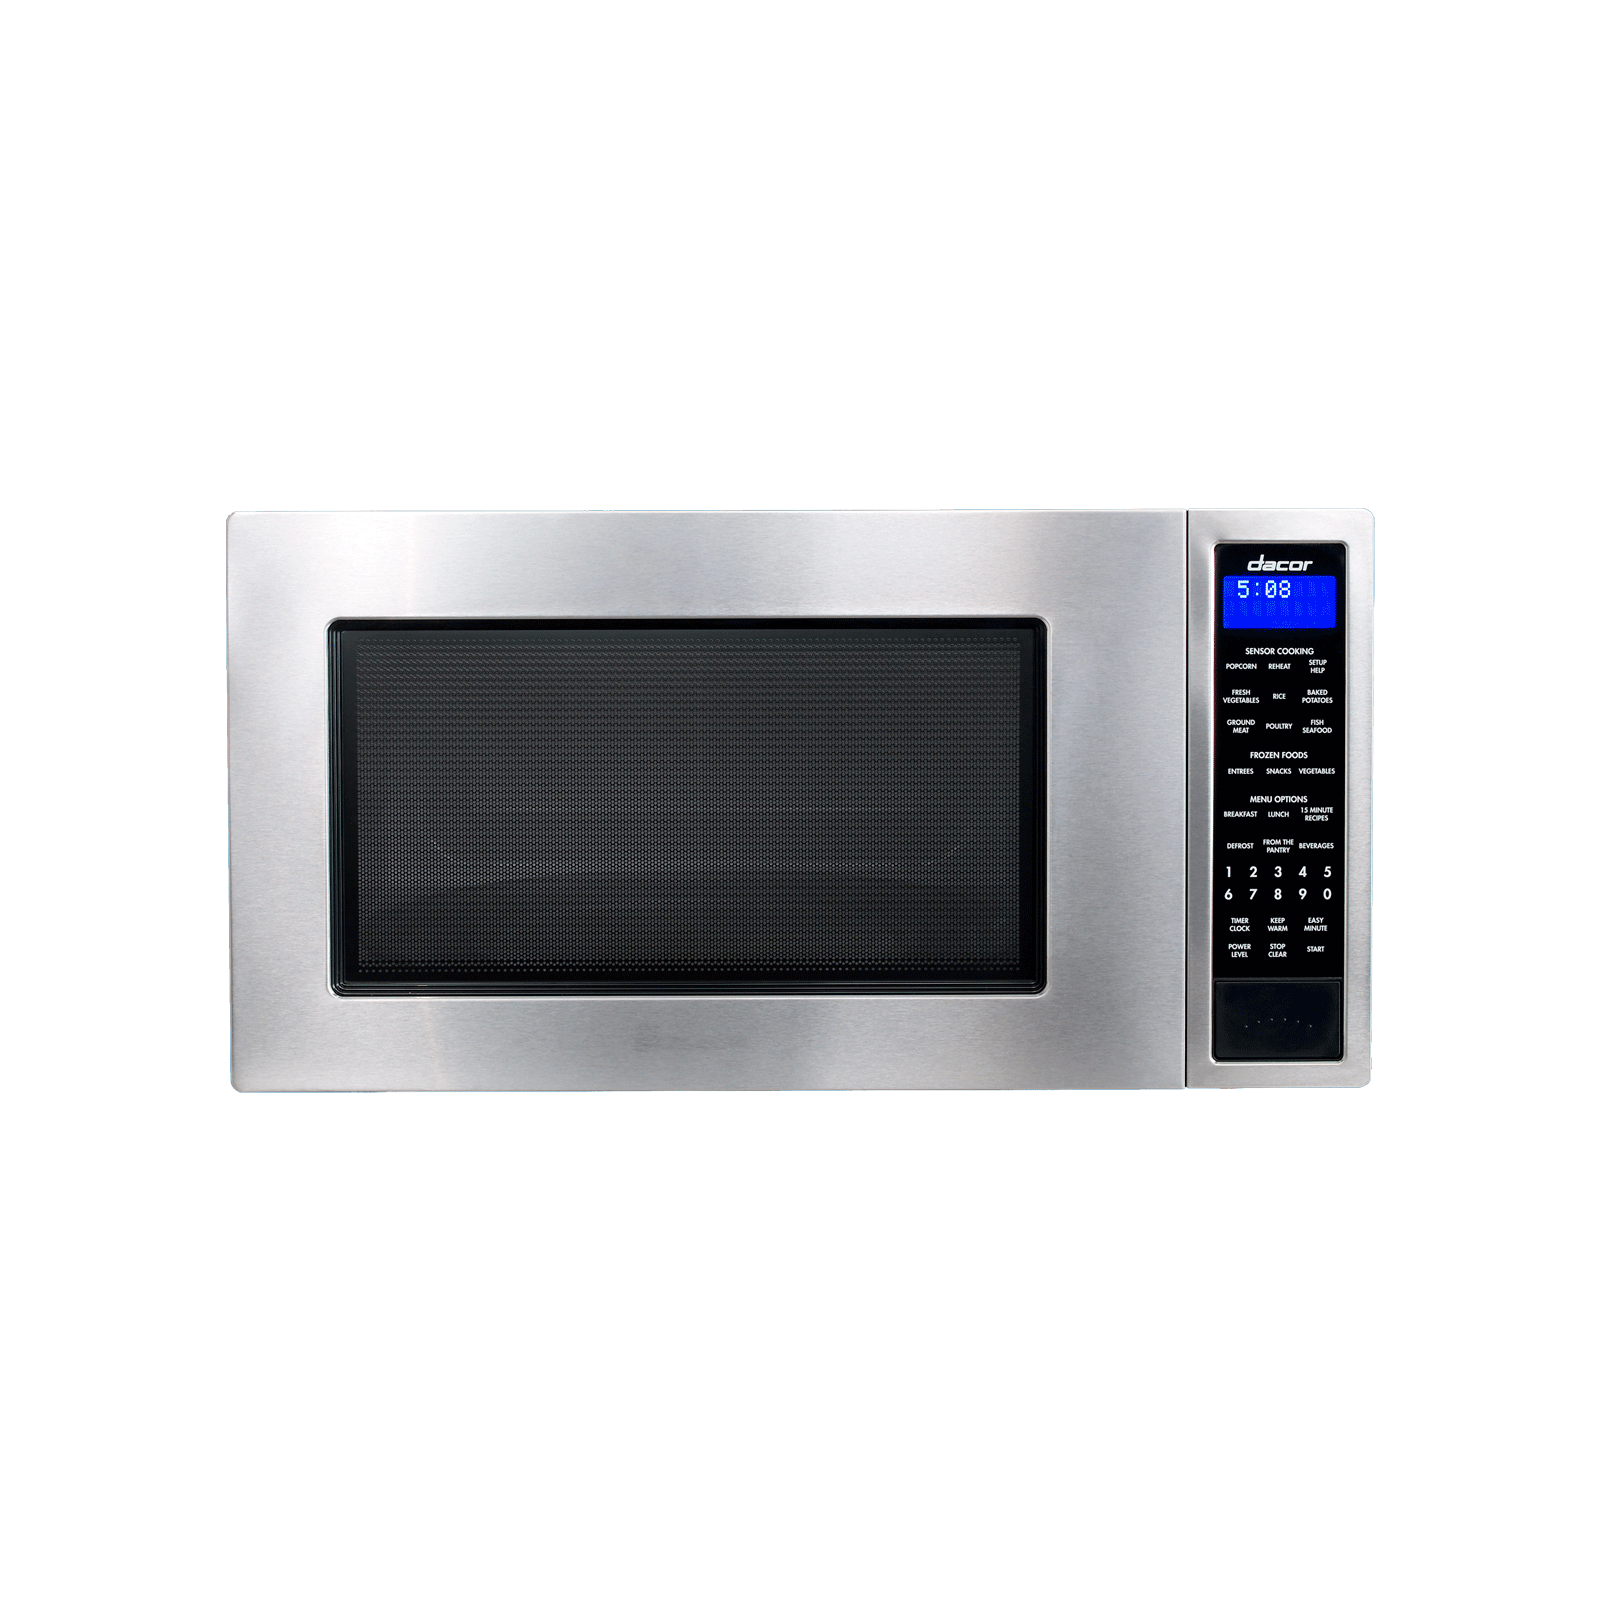 """Dacor Heritage 24"""" Microwave Oven in Black Glass"""